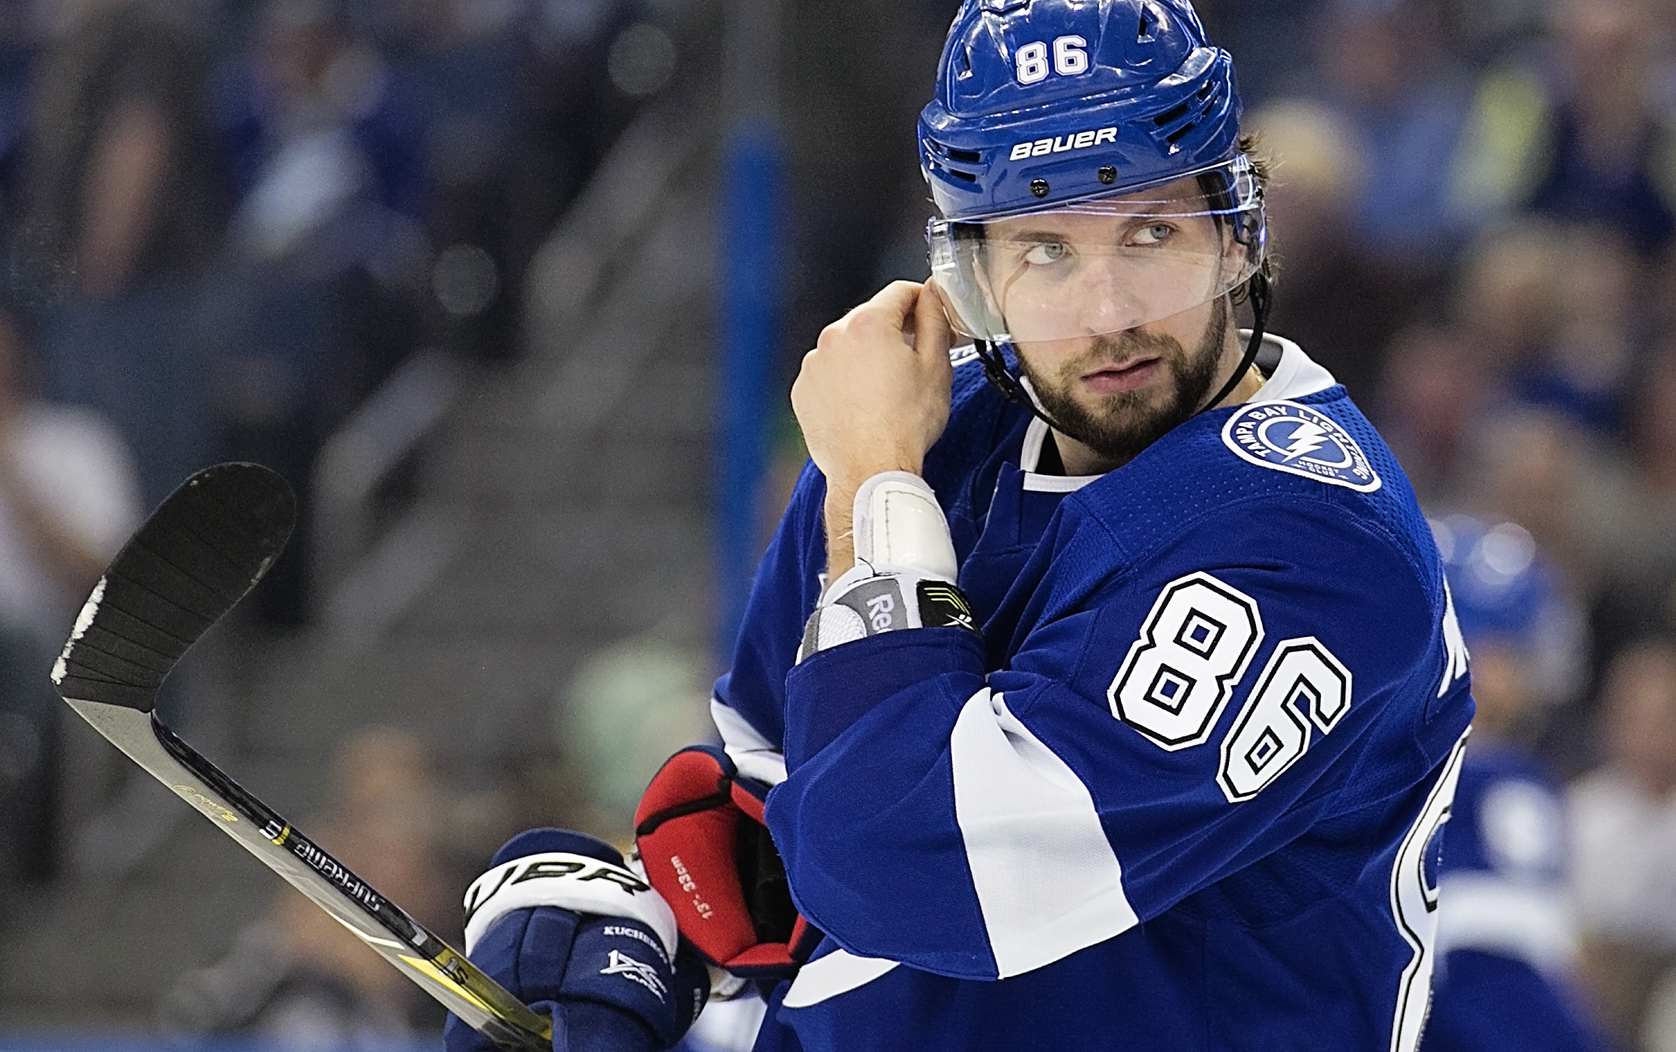 Kucherov needs to play well vs. Leafs./CARMEN MANDATO